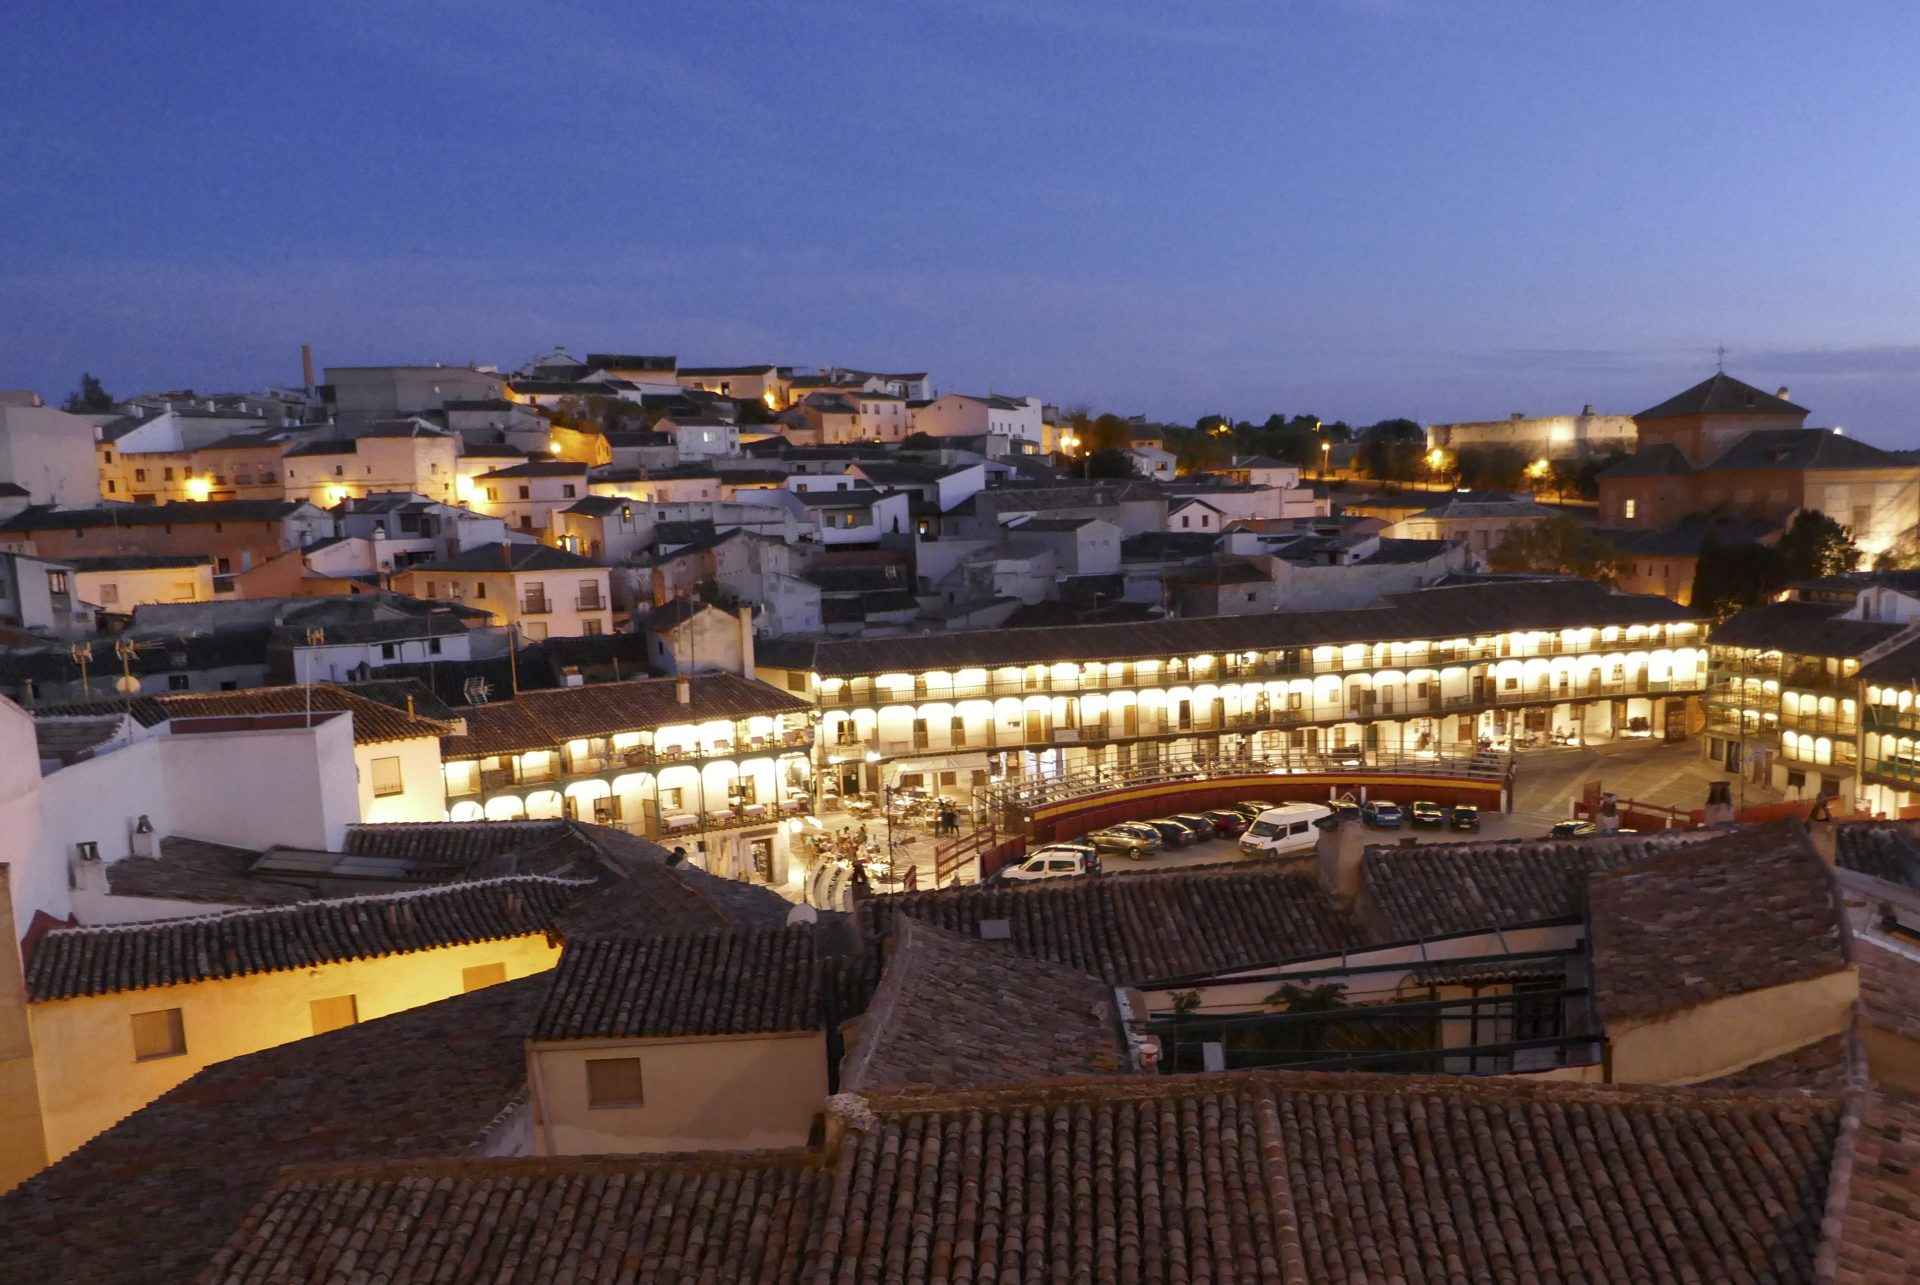 Chinchón is an authentic town with one of the most famous Plaza Mayor's in Spain, near by our B&B Los Mofletes.